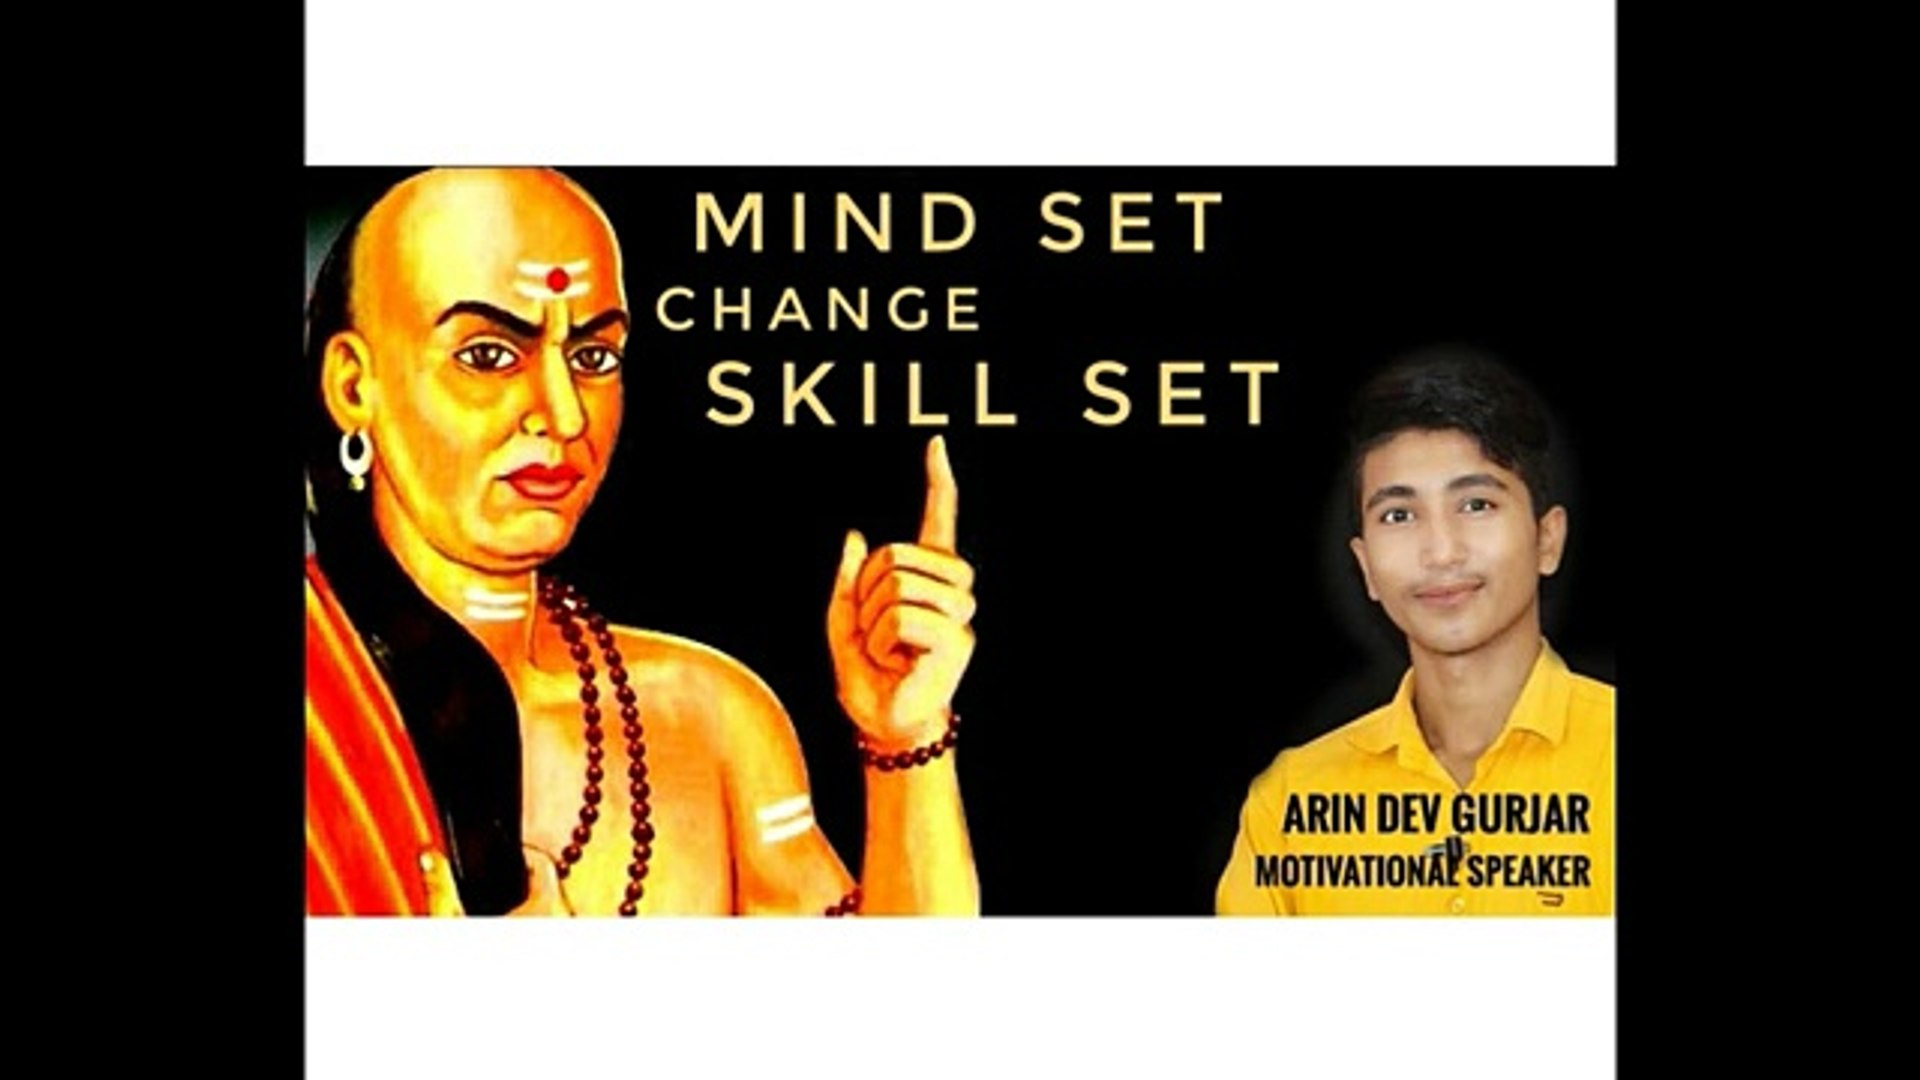 MIND SET CHANGE SKILL SET CHANKYA NITI BY ARIN DEV GURJAR MOTIVATIONAL SPEAKER || YOUNGEST MOTIVATIO